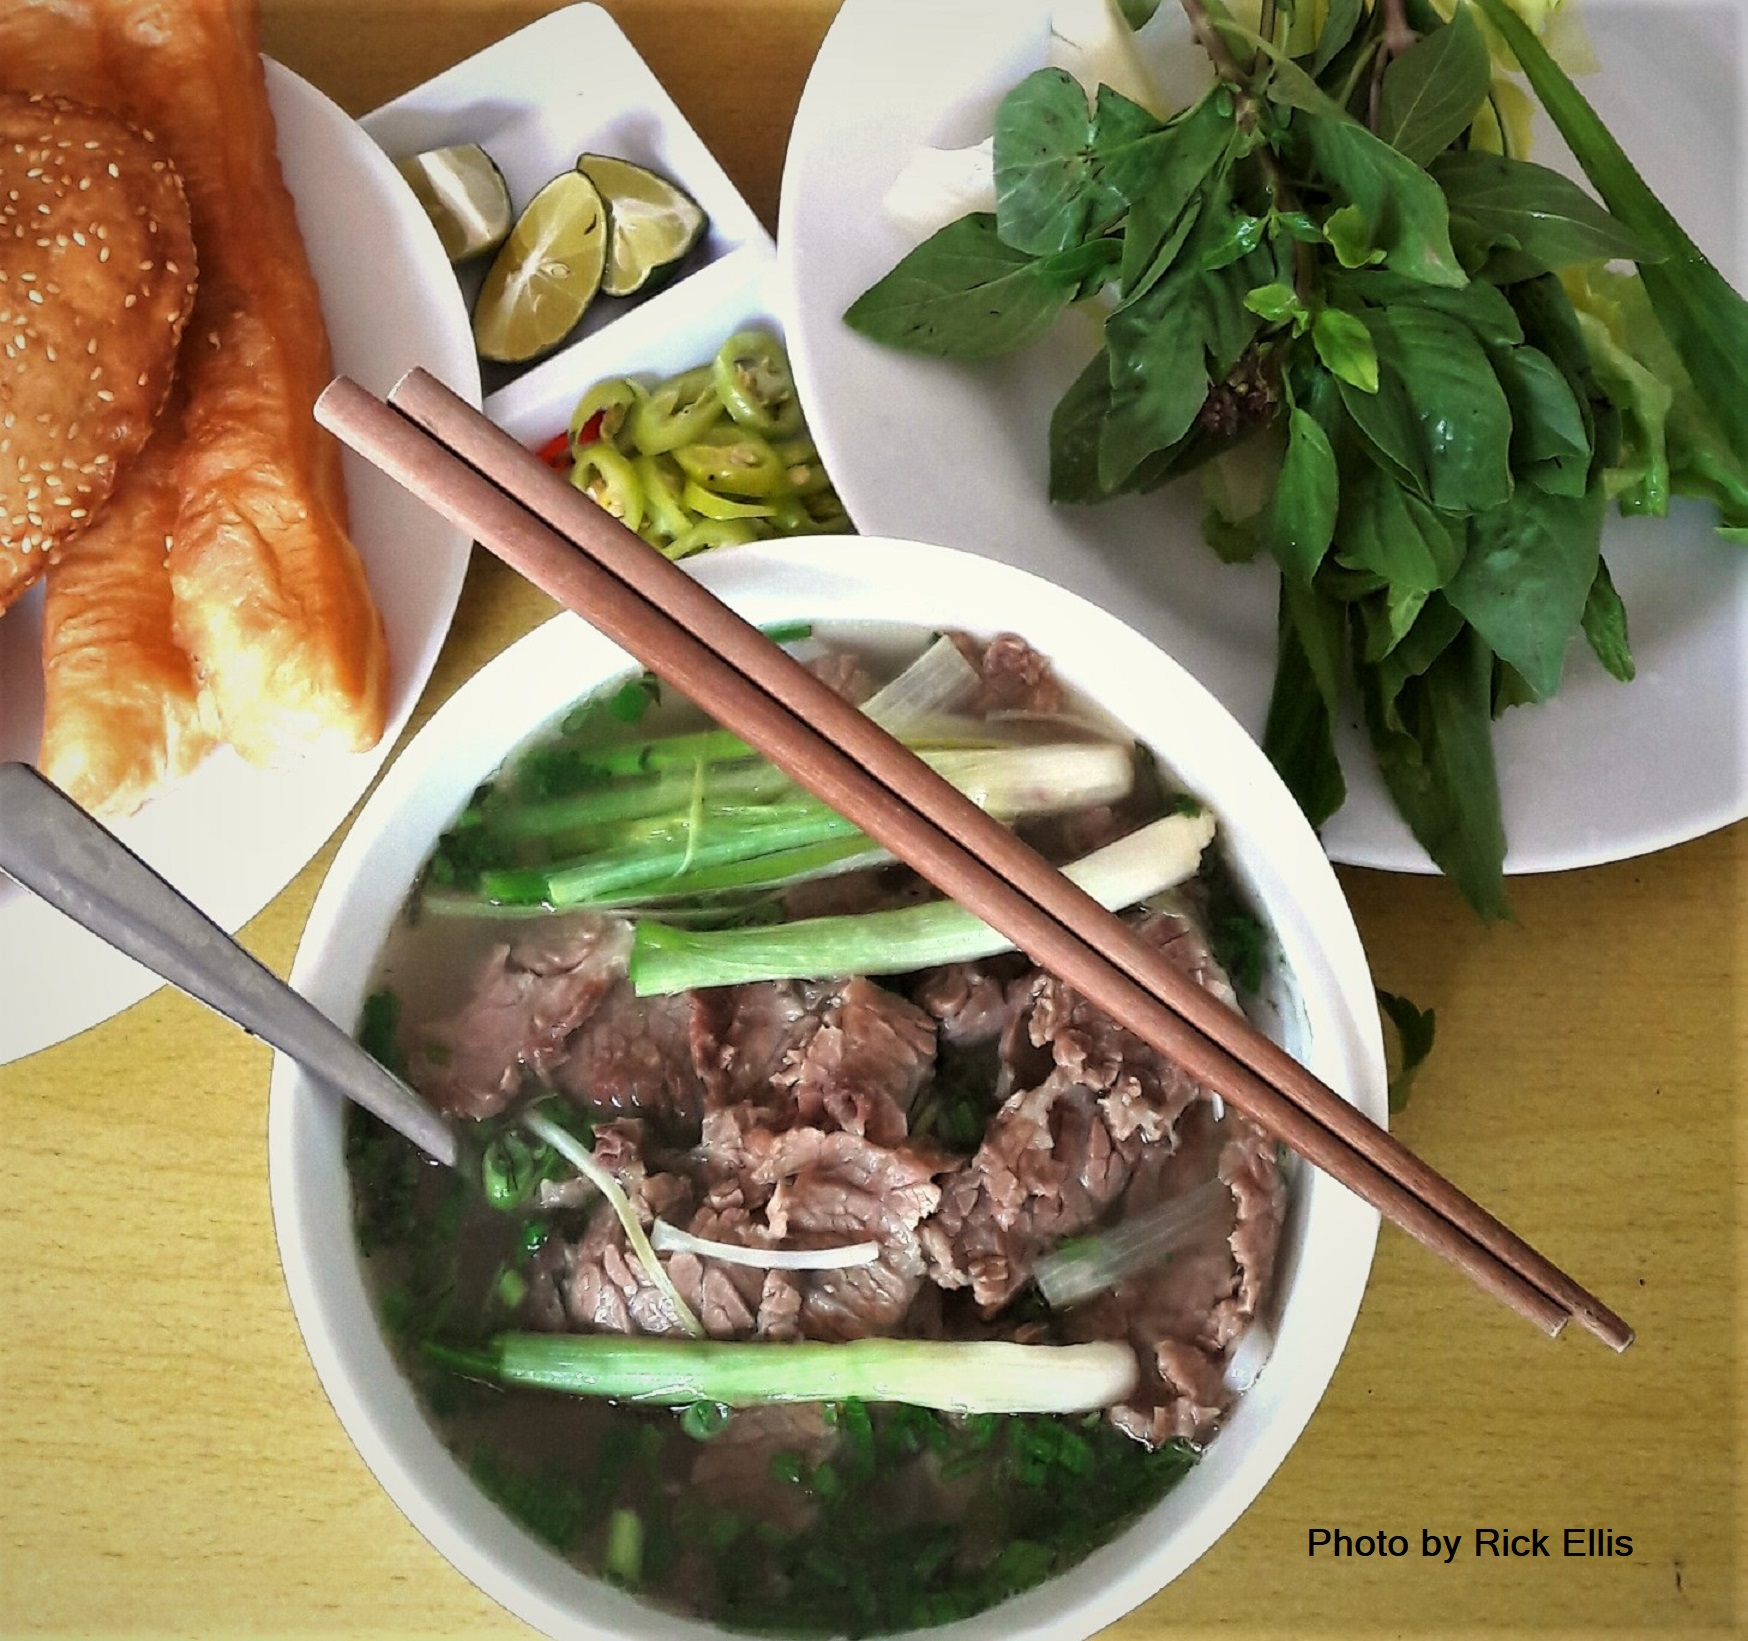 A top-notch bowl of 'phở bắc' (northern-style Vietnamese beef noodle soup) at Phở Trang in Da Lat City, Lam Dong Province, Vietnam. Photo: Rick Ellis